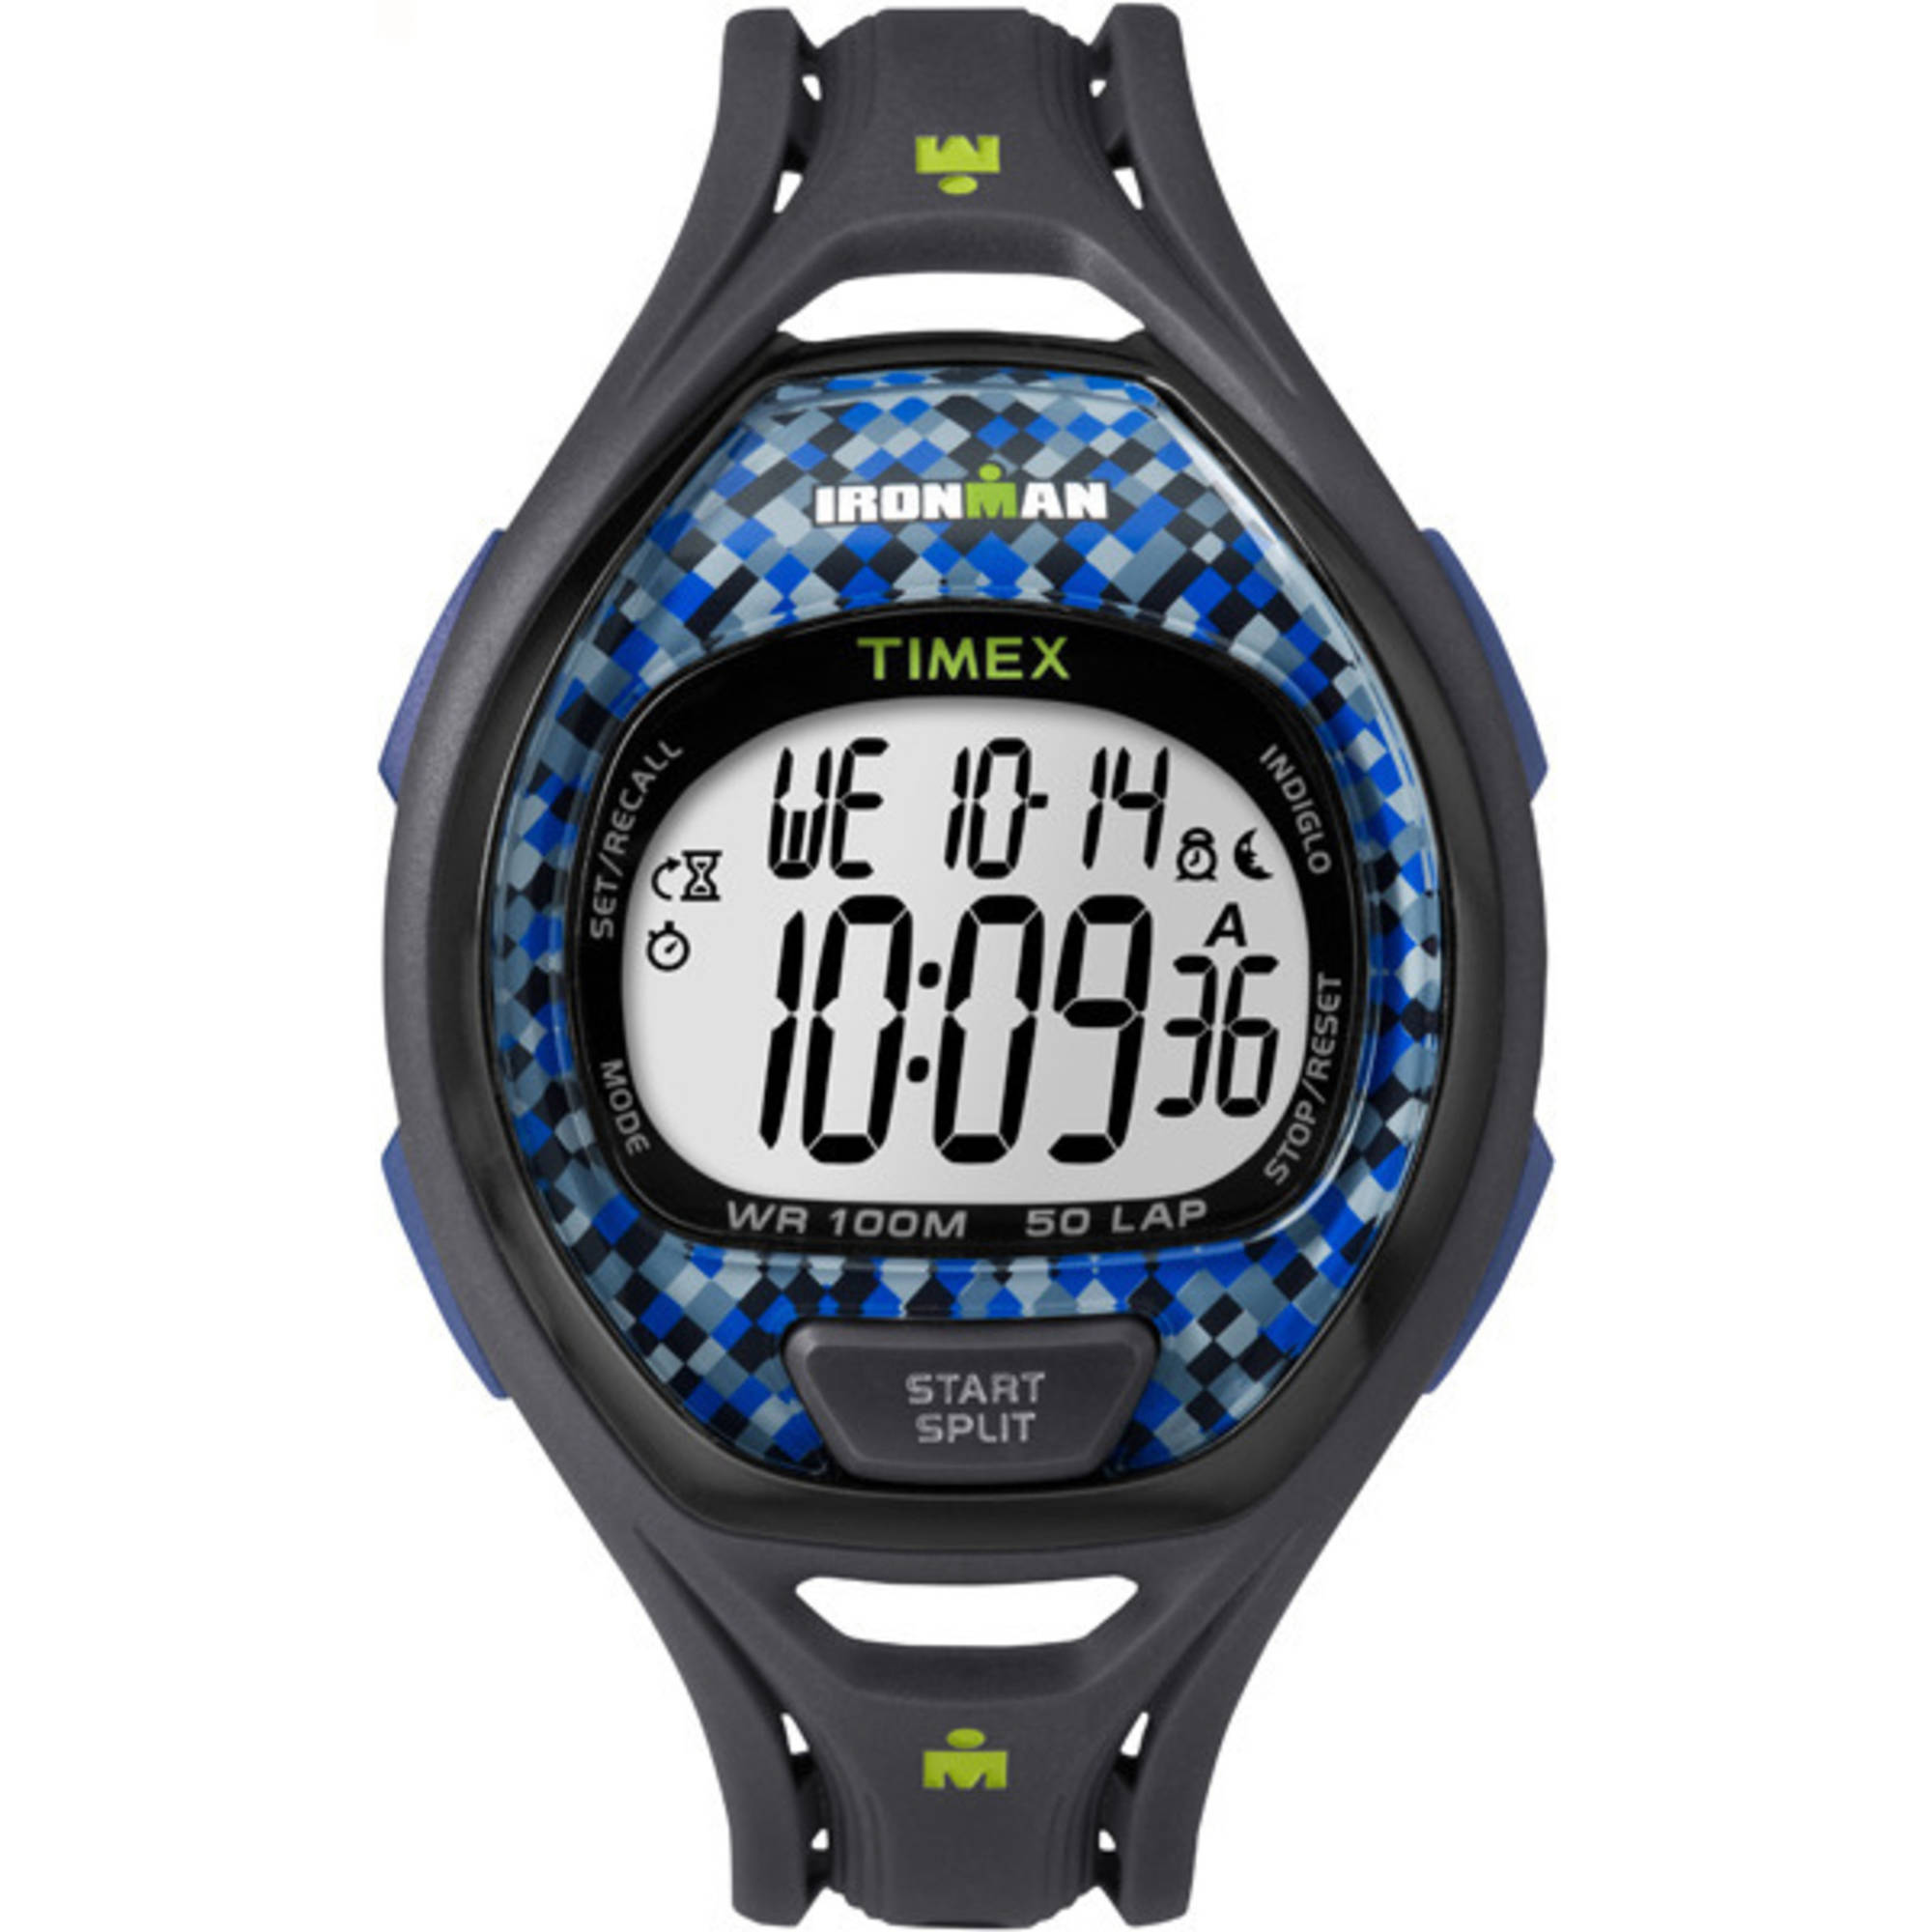 Timex Ironman Sleek 50 Full-Size Blue/Gray Watch, Resin Strap